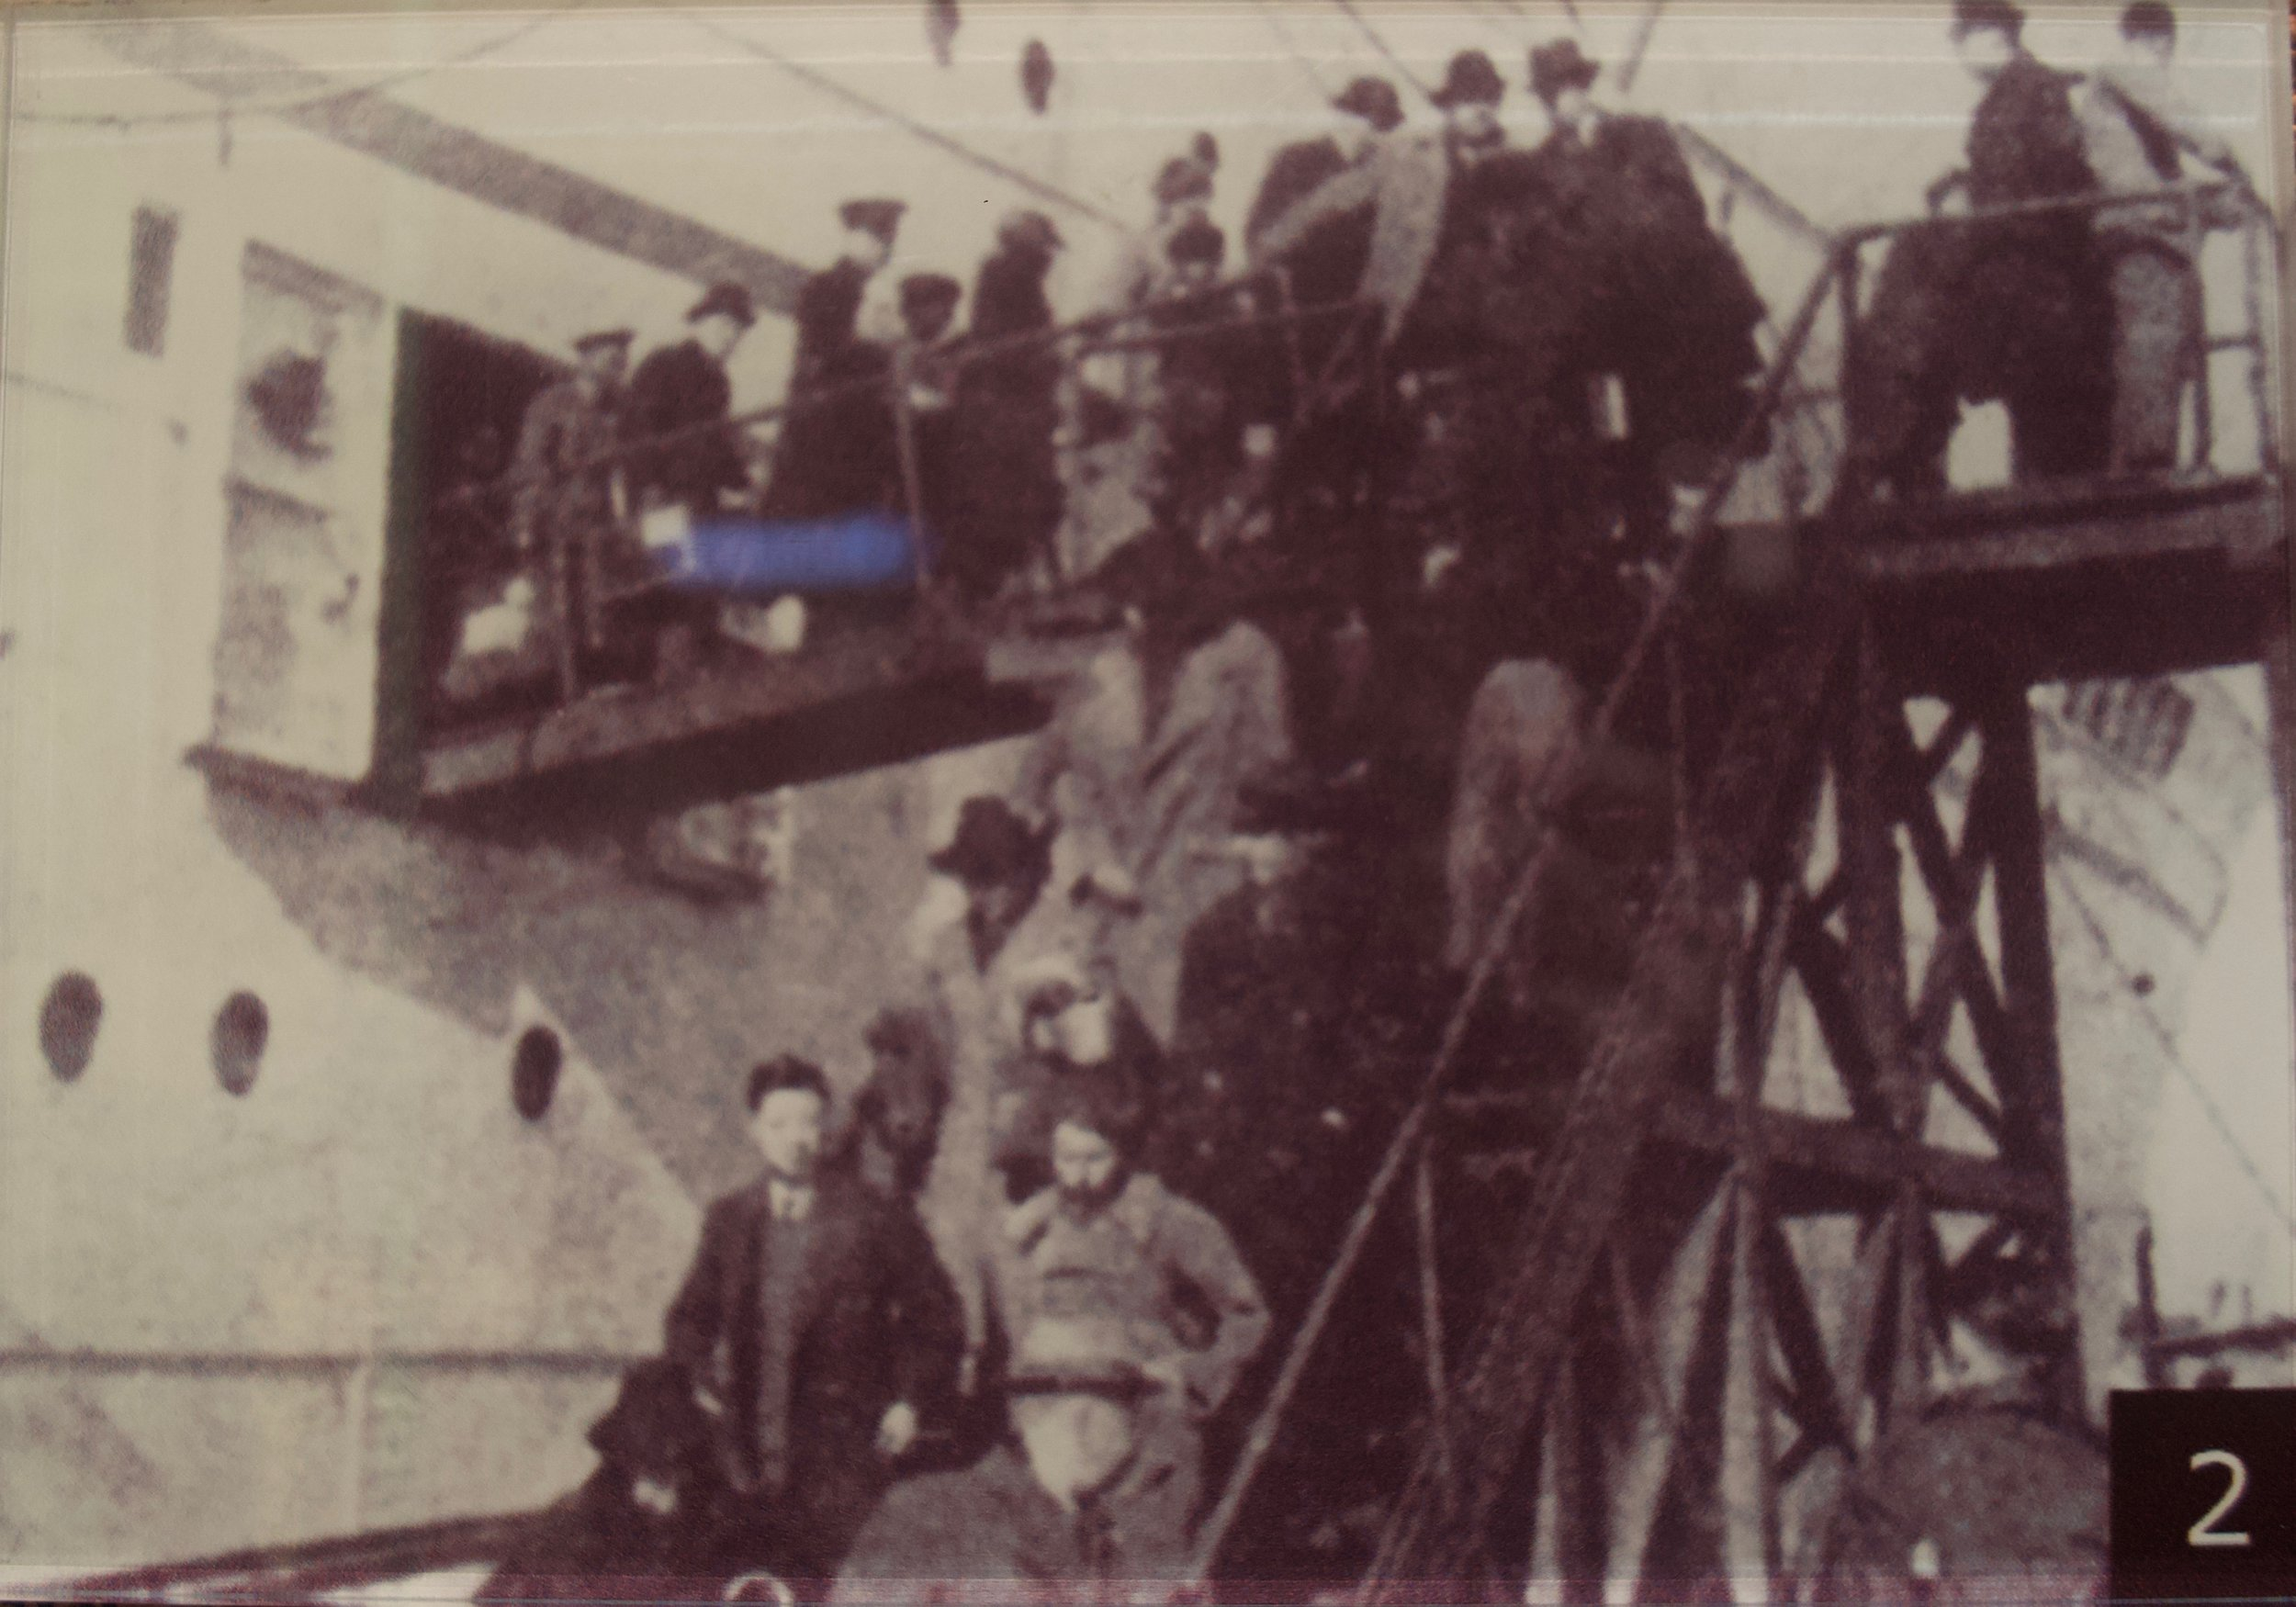 Refugees disembarking their ship. [Shanghai Jewish Refugees Museum]